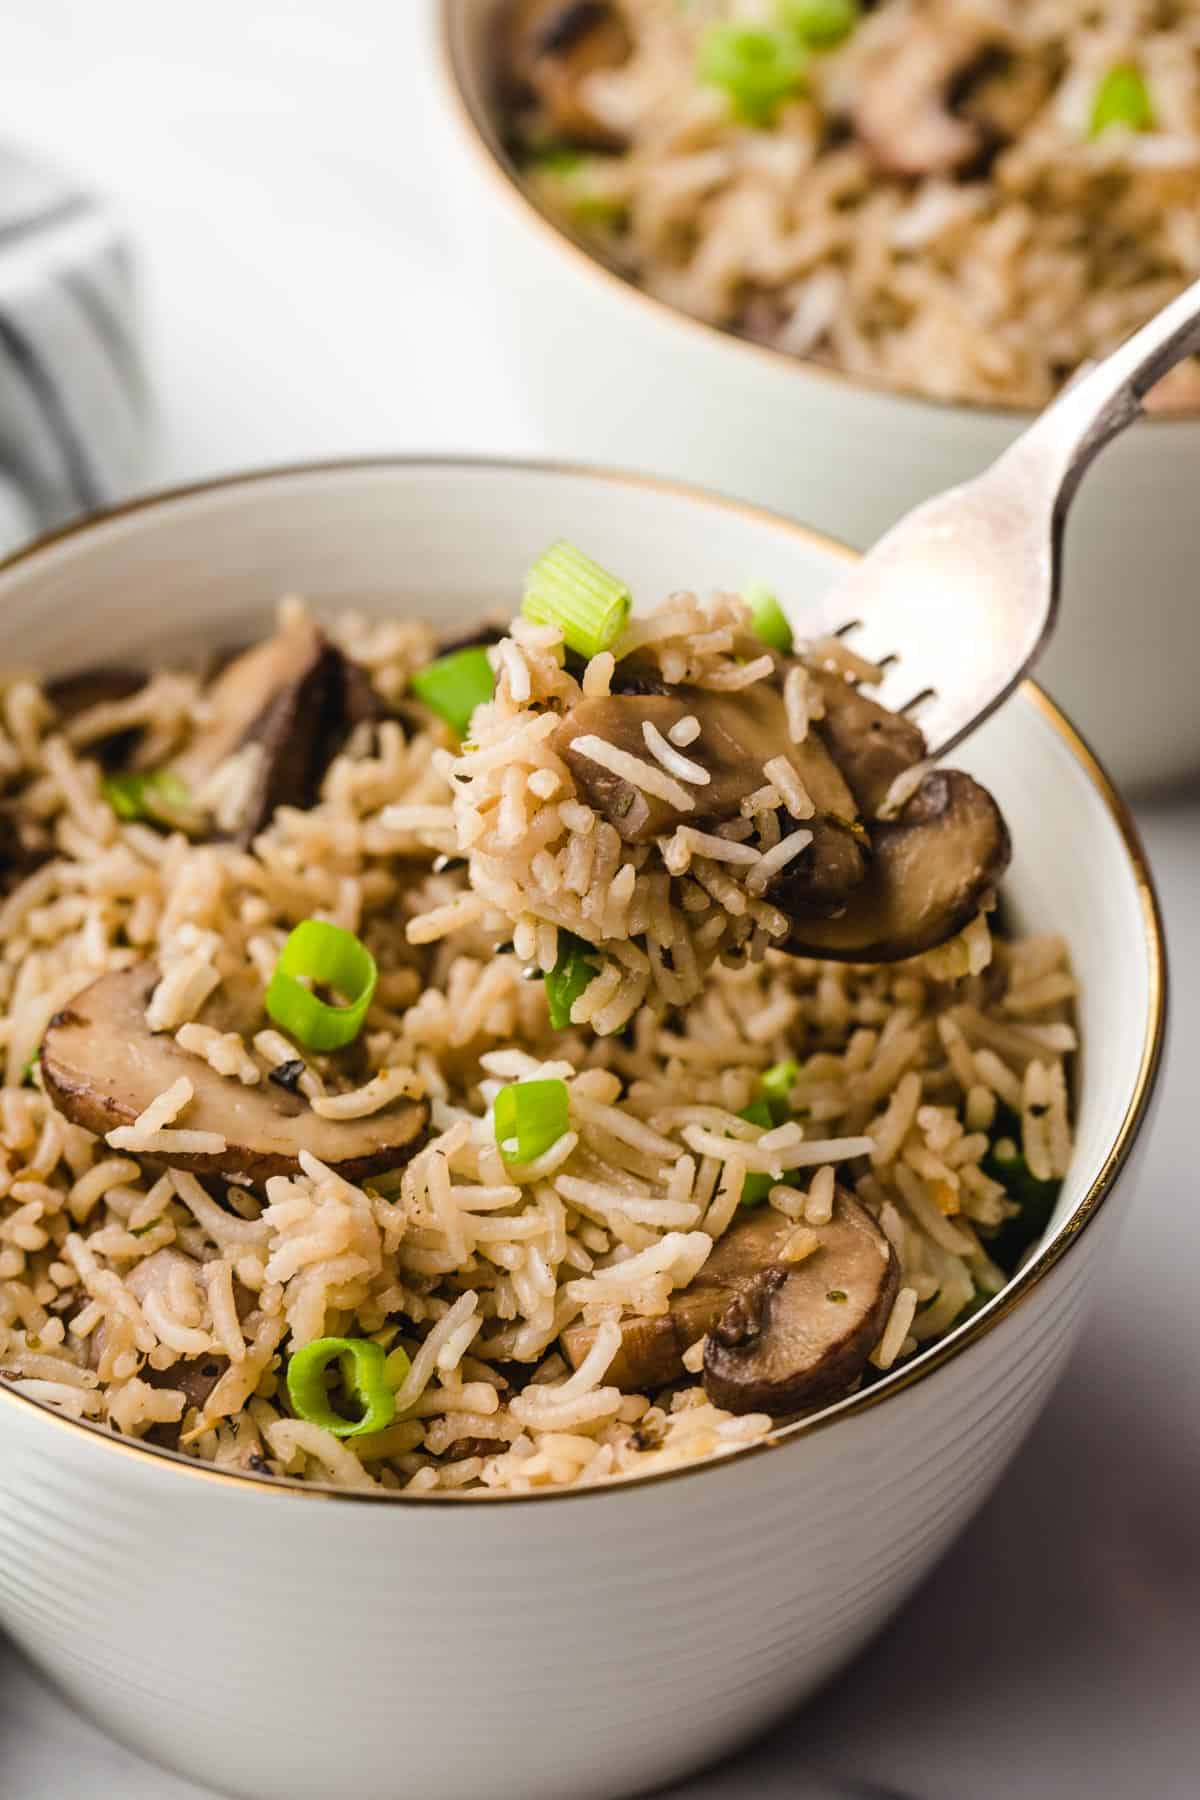 Eating mushroom rice with a fork from a bowl